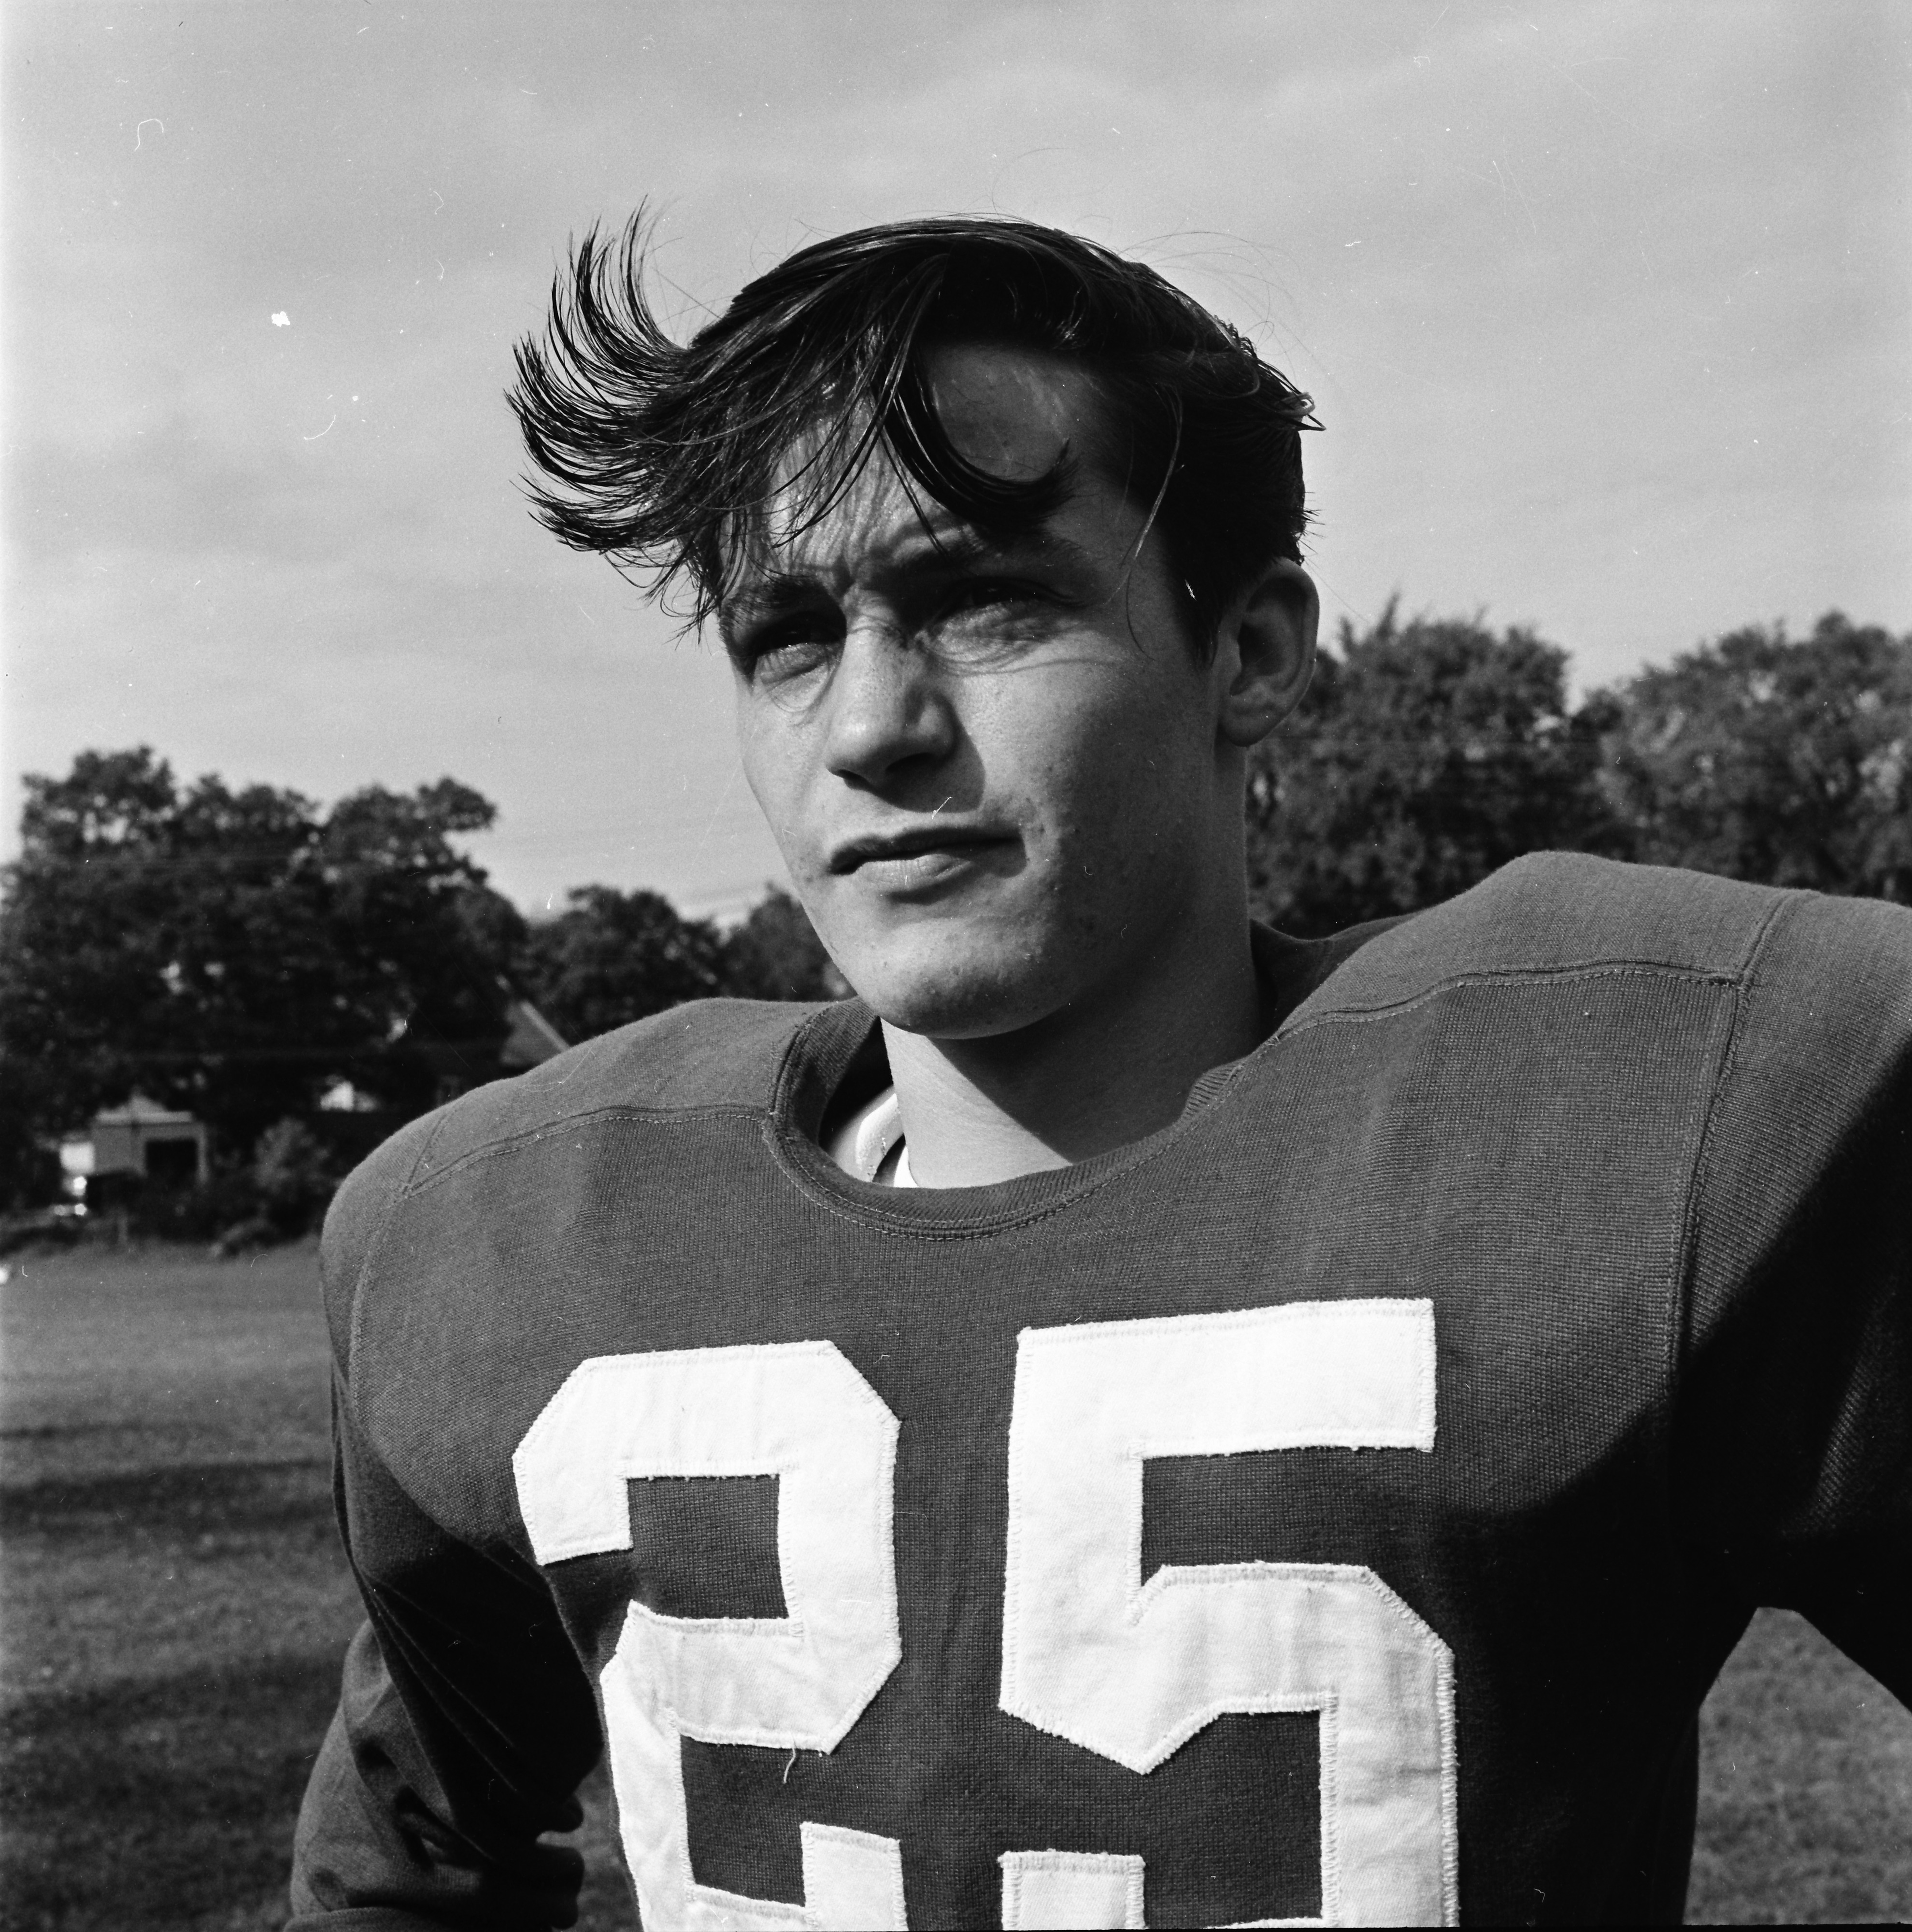 Francis O'Donnell, St. Thomas High School Football Player, Will Be In Fight With Redford St. Agatha, October 1960 image